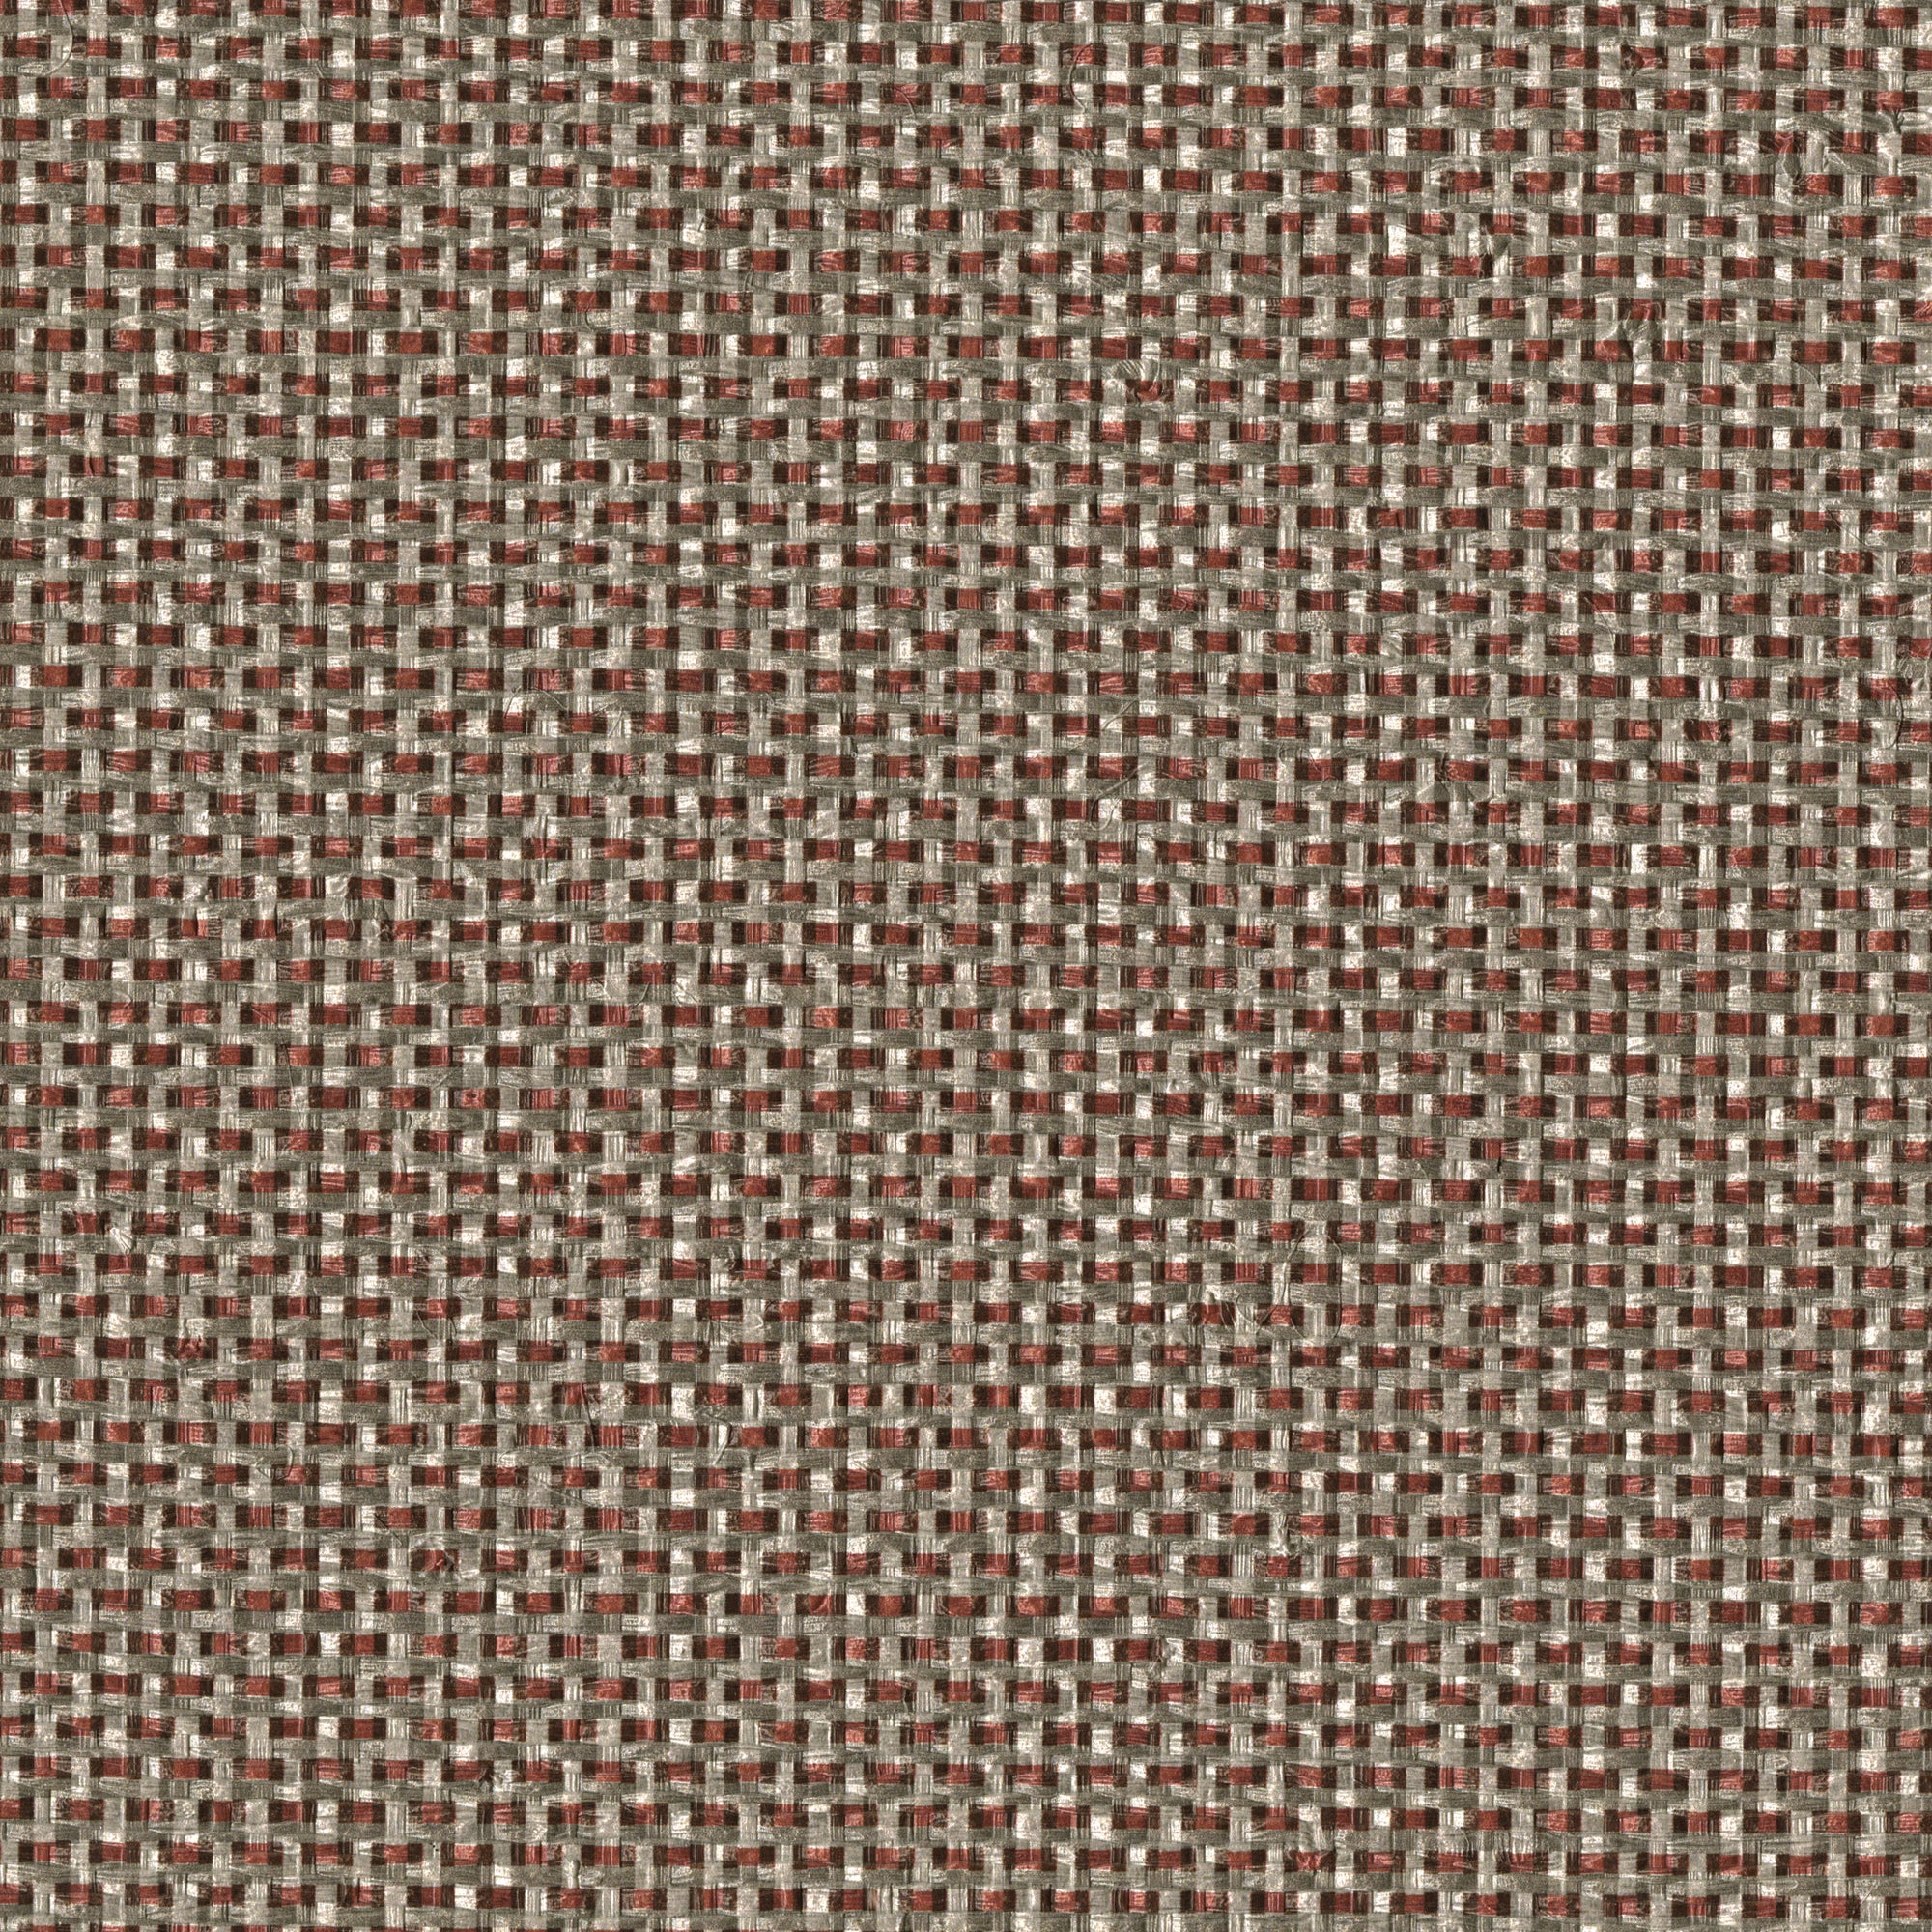 Faux Grasscloth Interlaced Weave In Tan And Khaki, 8171 28